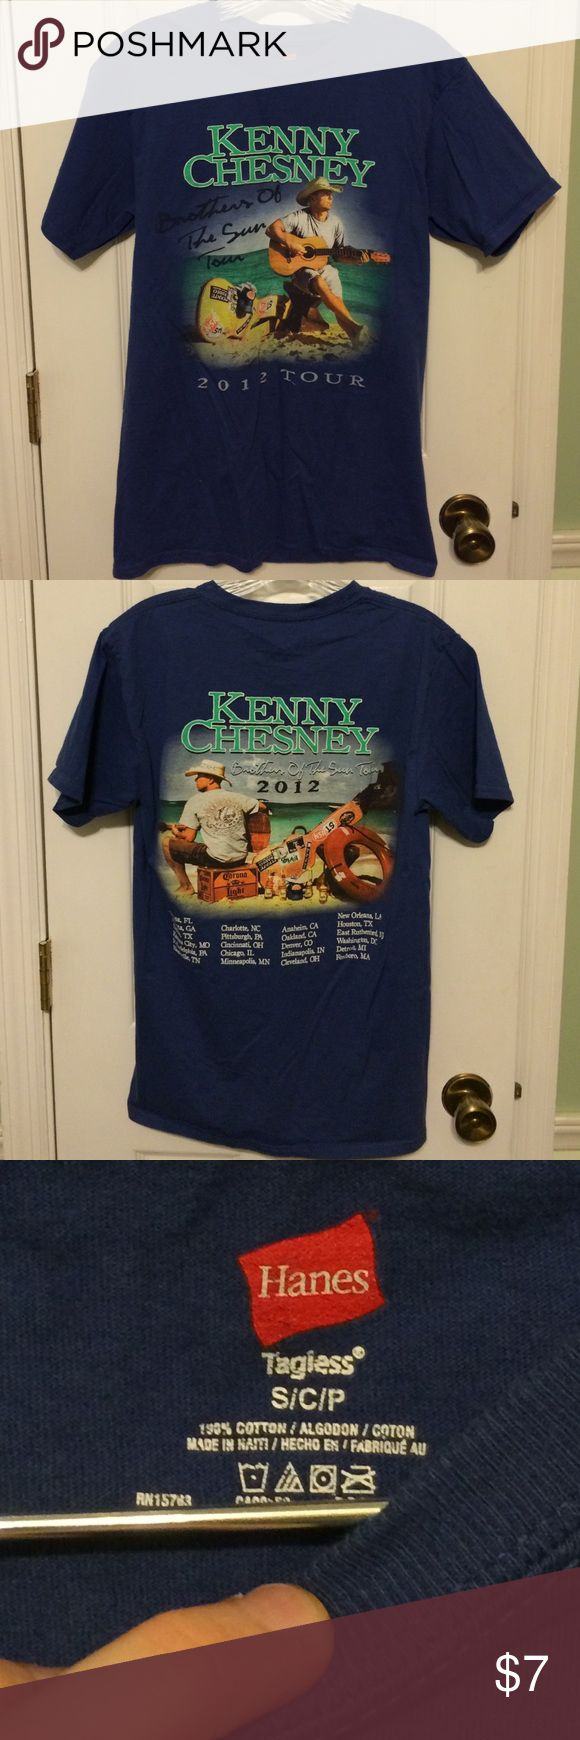 """Kenny Chesney Concert Tee This is a size Small Kenny Chesney concert tshirt from his 2012 """"Brothers of The Sun"""" Tour!! It's is beautiful condition and has tour dates listed on the back! No holes, stains, or tears! Hanes Tops Tees - Short Sleeve"""